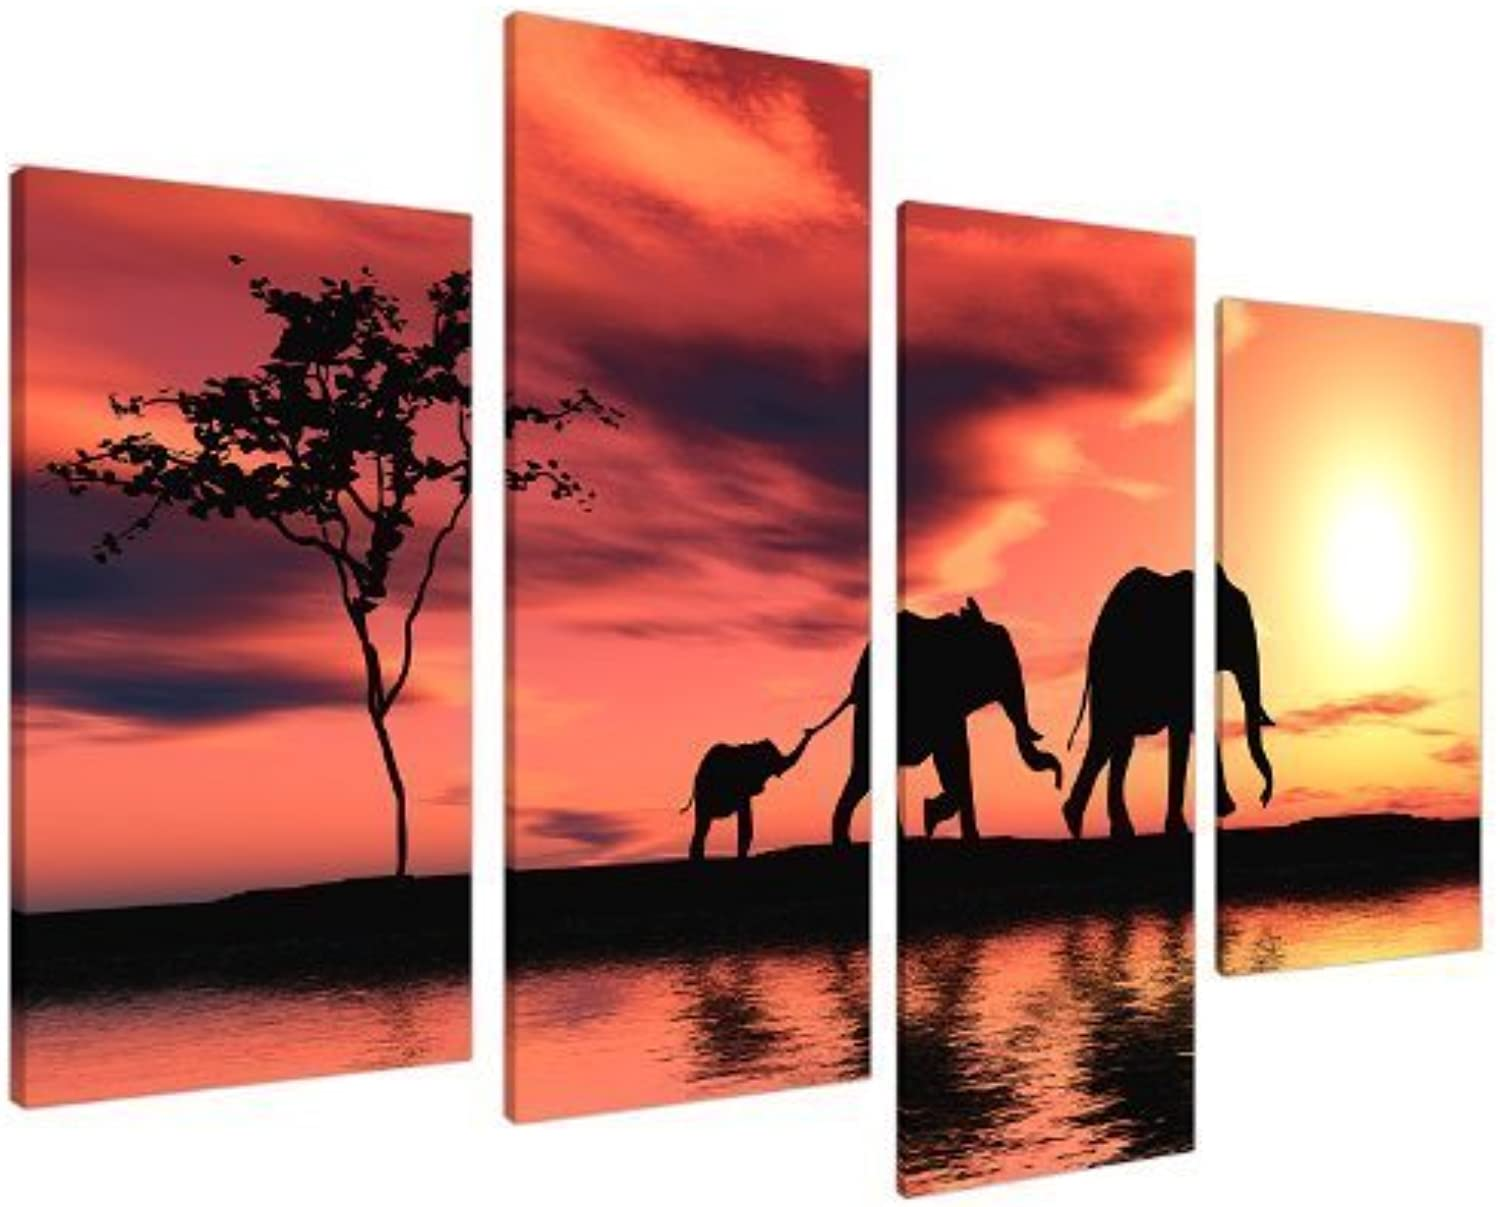 Large African Sunset Elephants Canvas Wall Art Pictures in orange and Black - XL - Big Modern Contemporary Artwork - Multi Panel Split Canvases - 130cm Wide